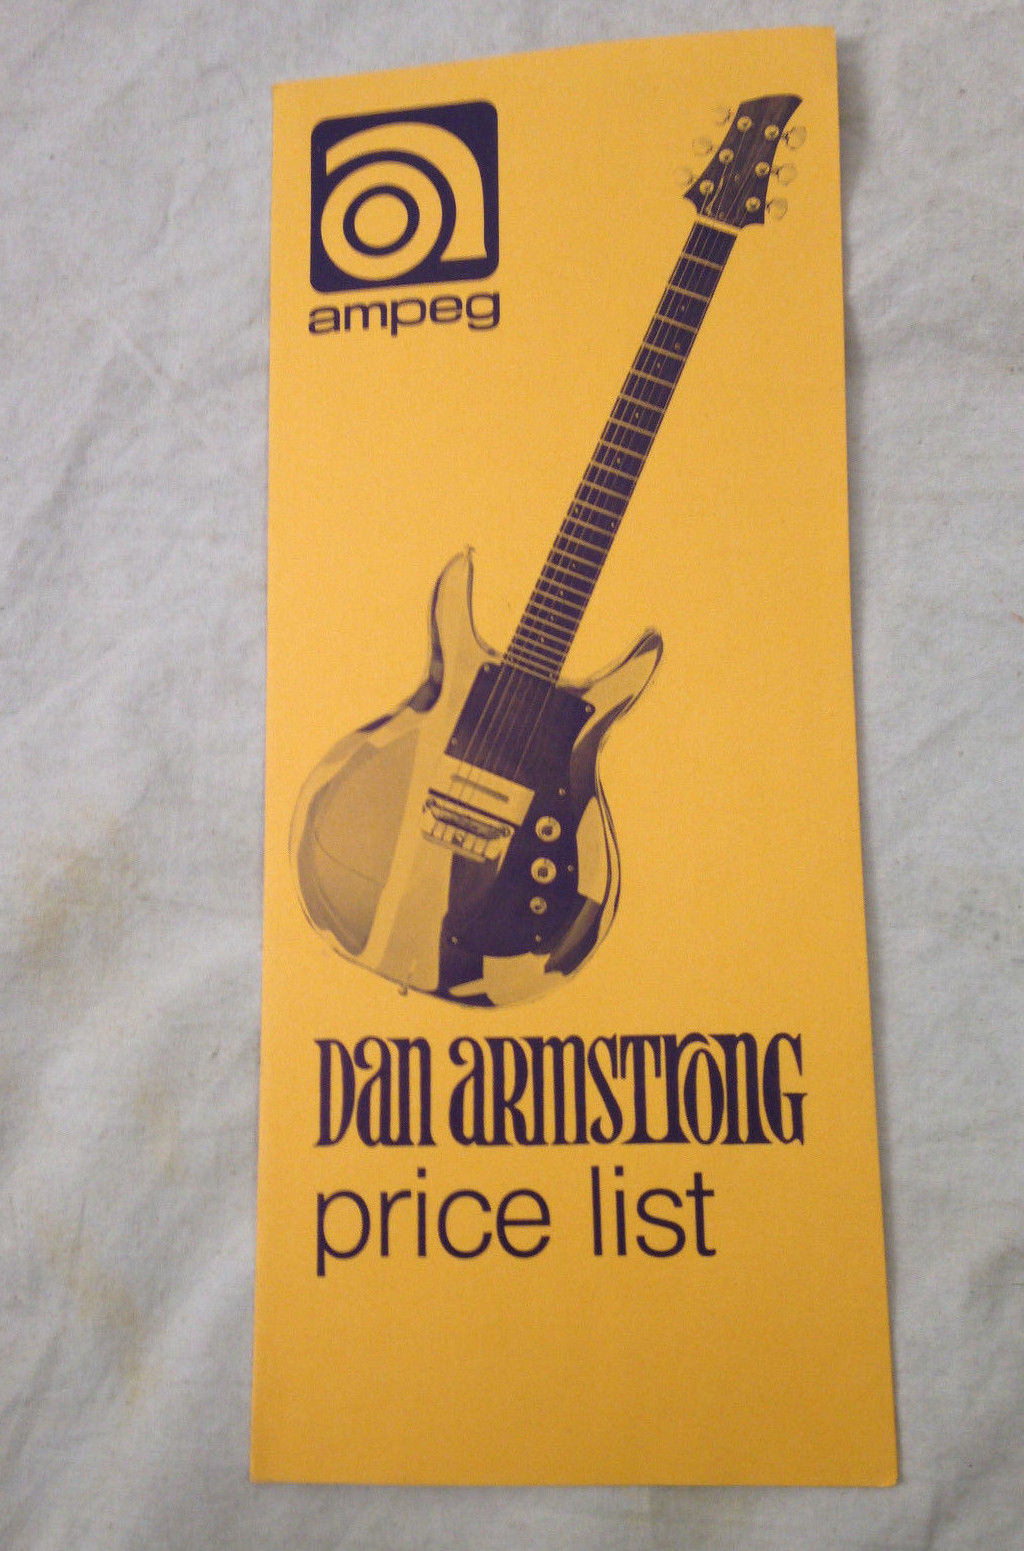 Dan Armstrong Green Ringer T Amstrong Blue Clipper Guitar Effect Circuit Diagram Ampeg Pricelist 1969